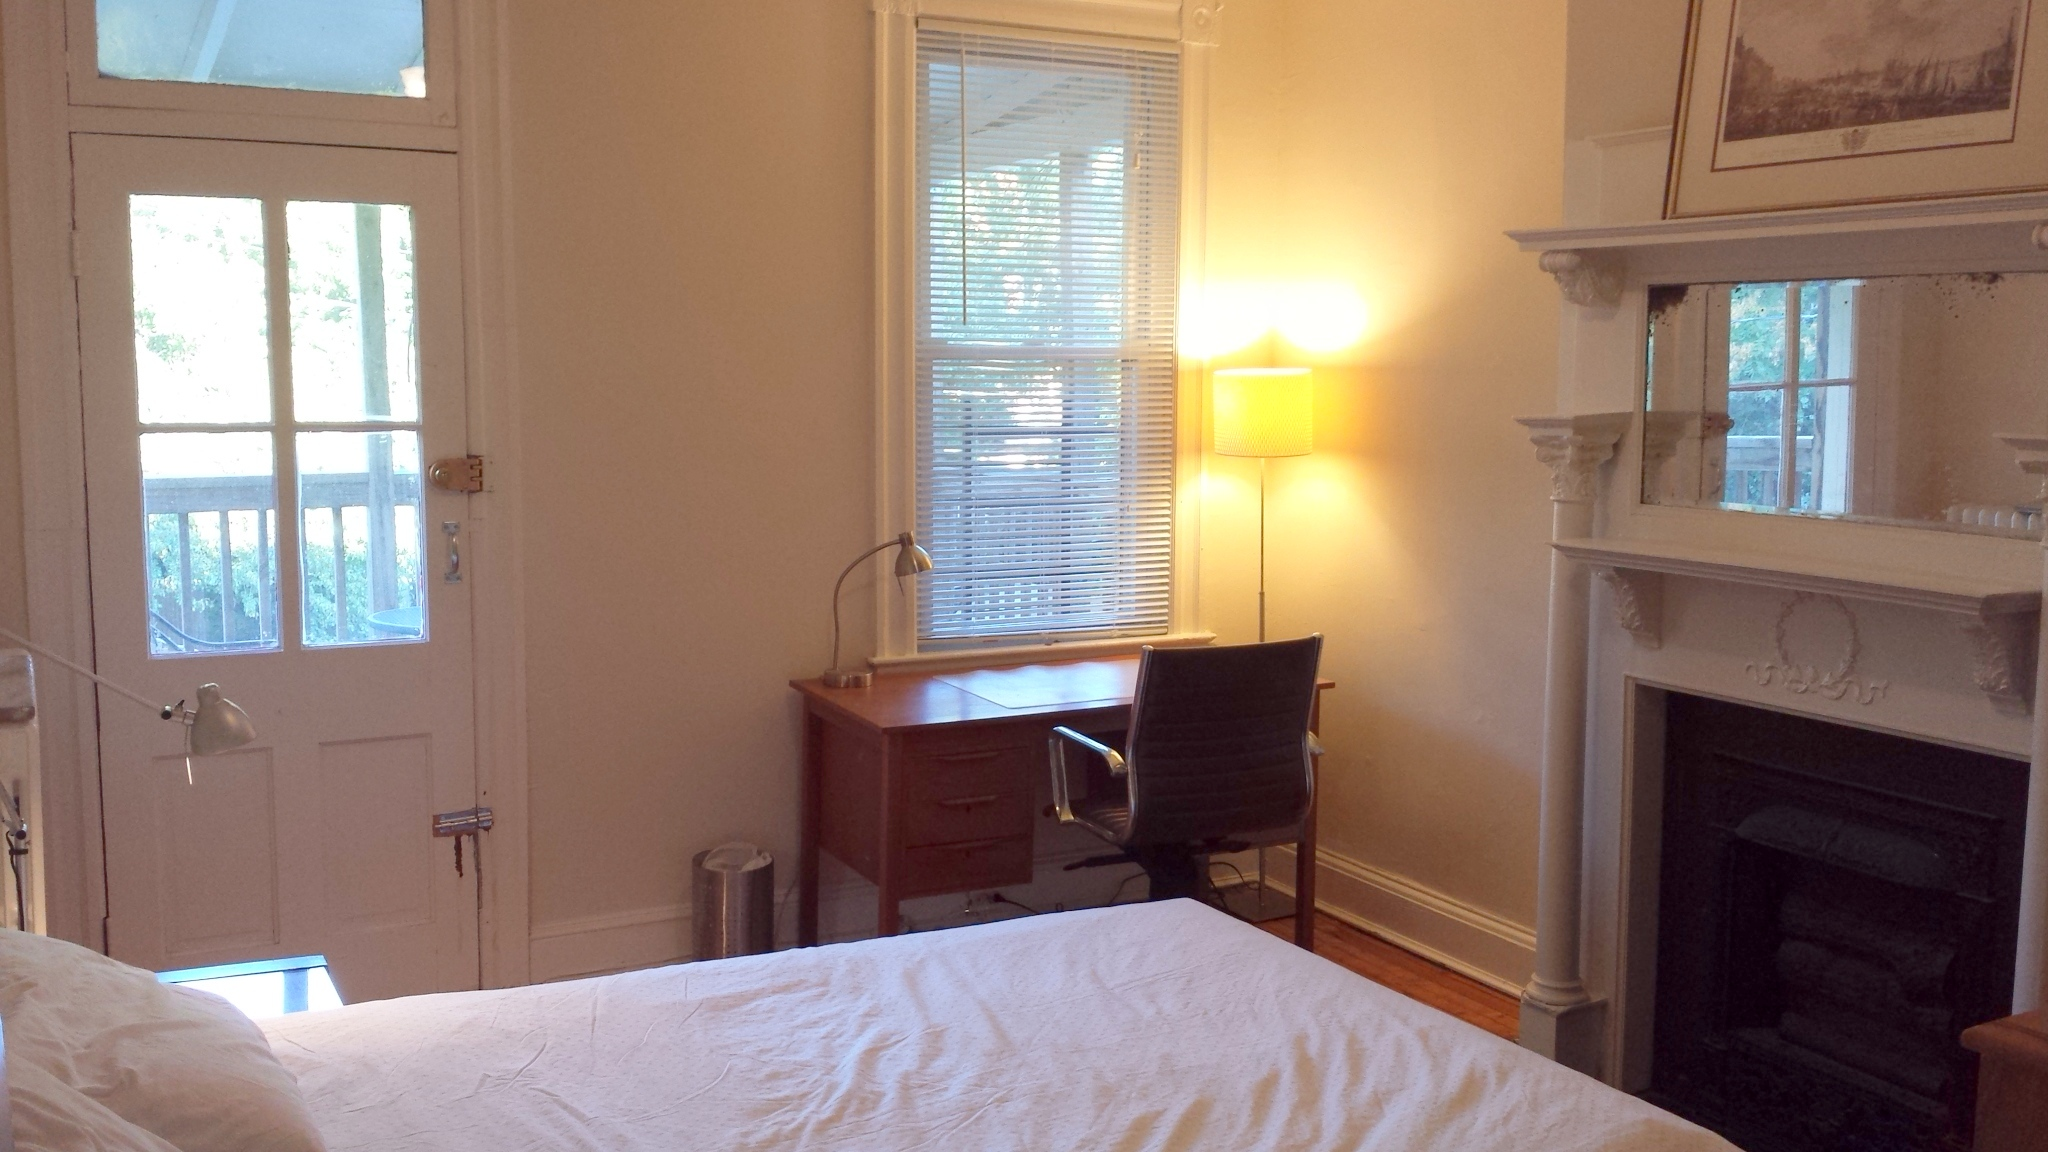 Baltimore room for rent / Brooklyn gynecology